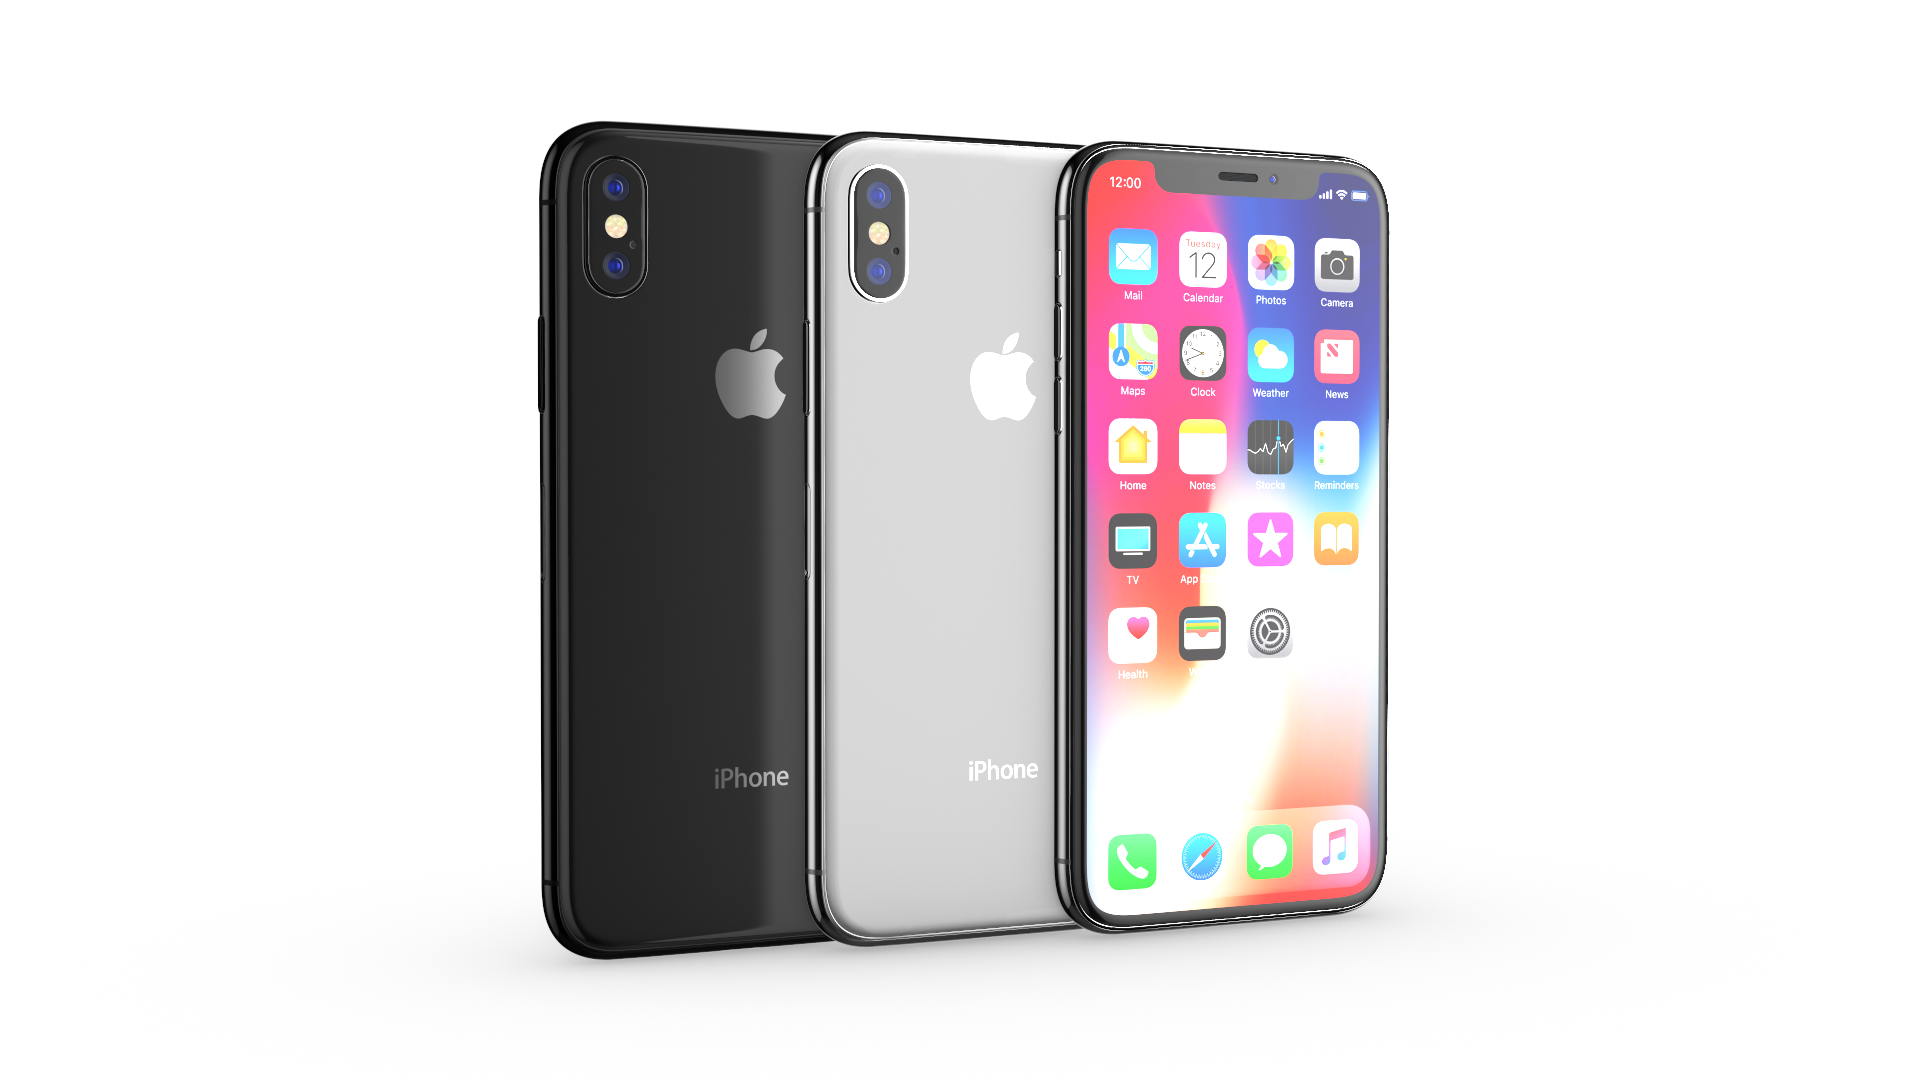 Apple iPhone X All colors.